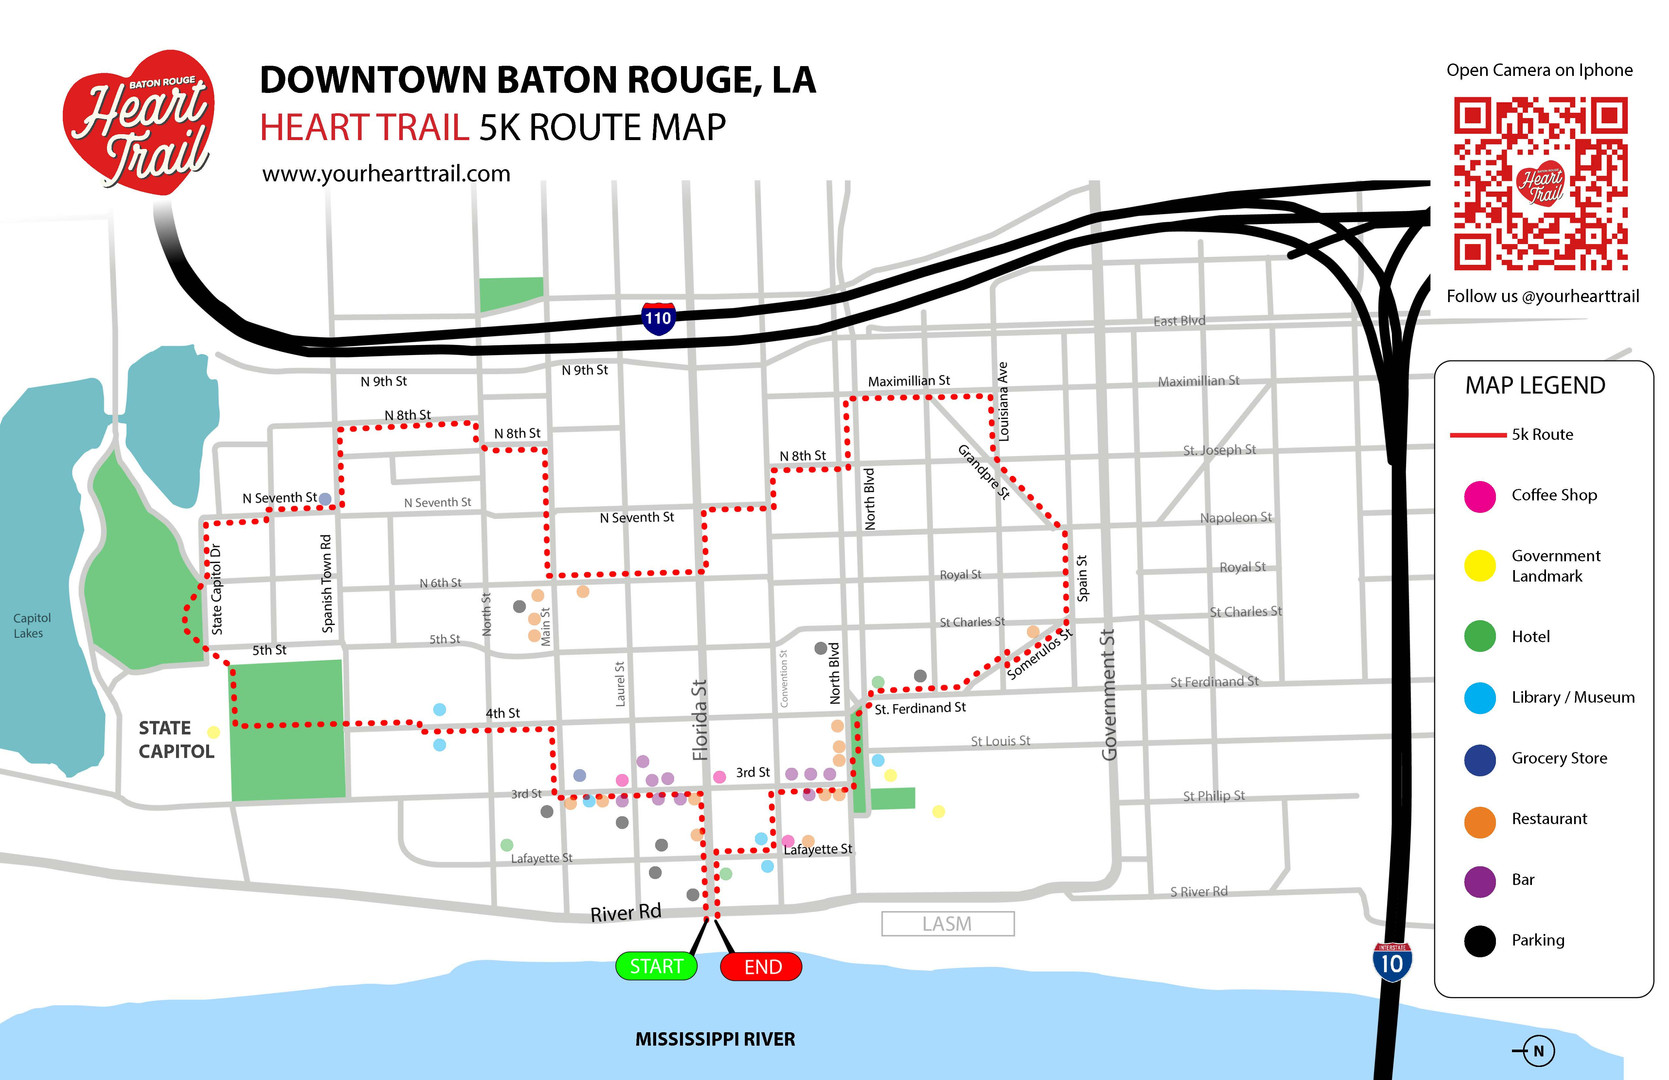 Downtown Baton Rouge Heart Trail